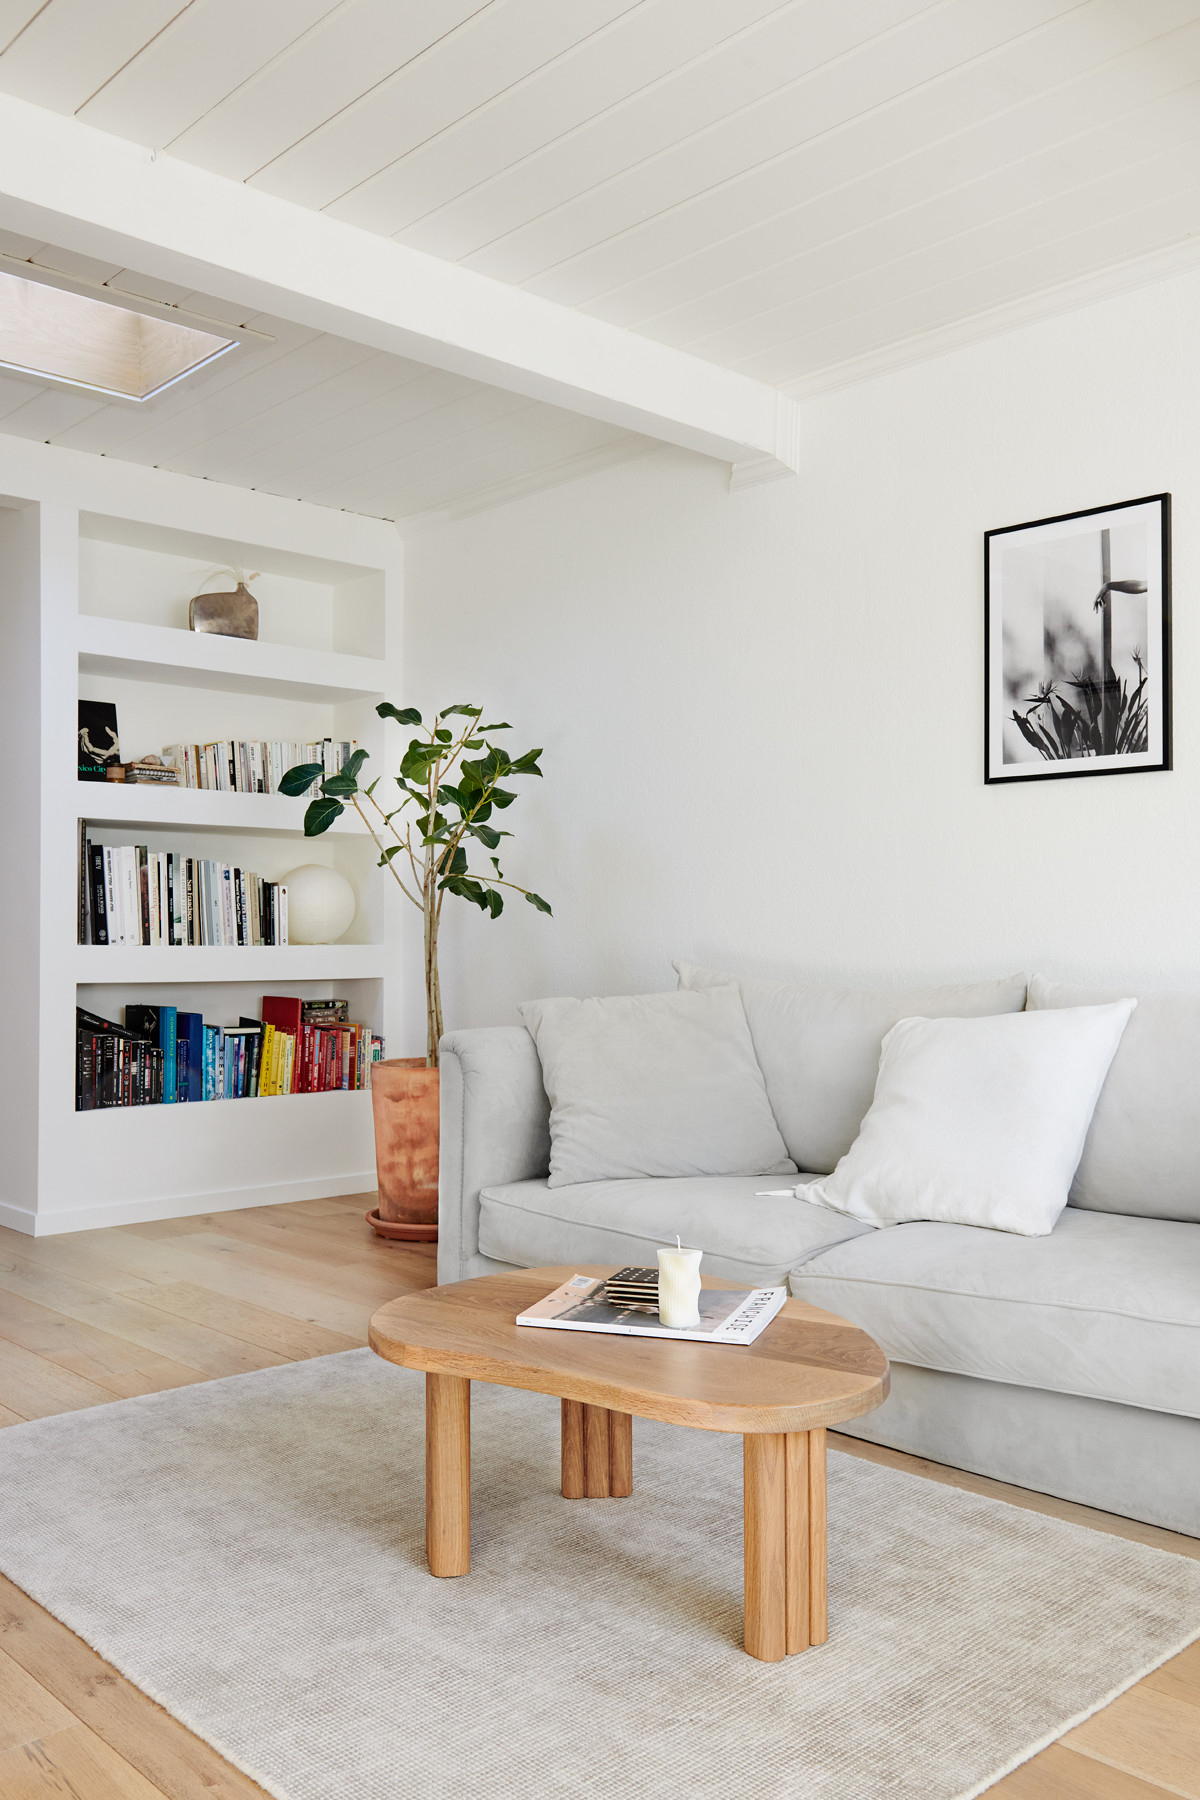 The living room is accented with a handmade bean-shaped coffee table byJosh Podoll.